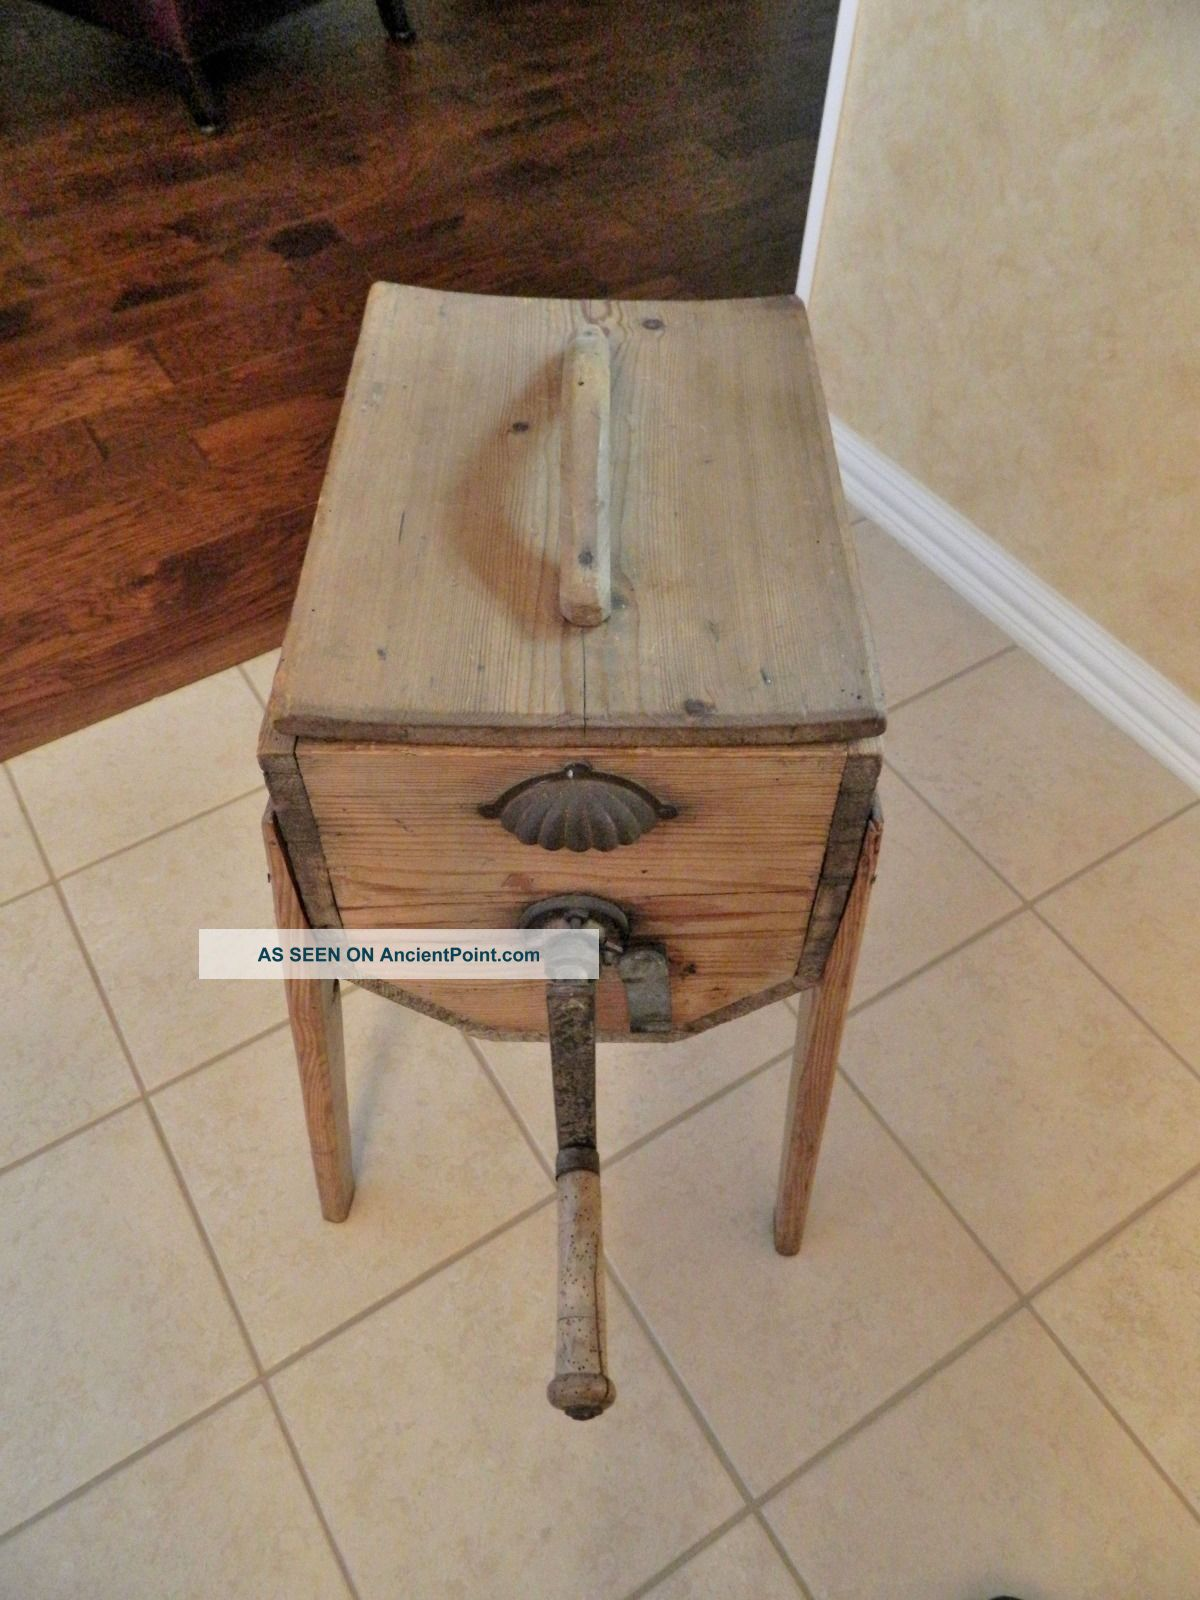 Antique Cylinder Butter Churn And Hand Crank On Stand/primitive Primitives photo